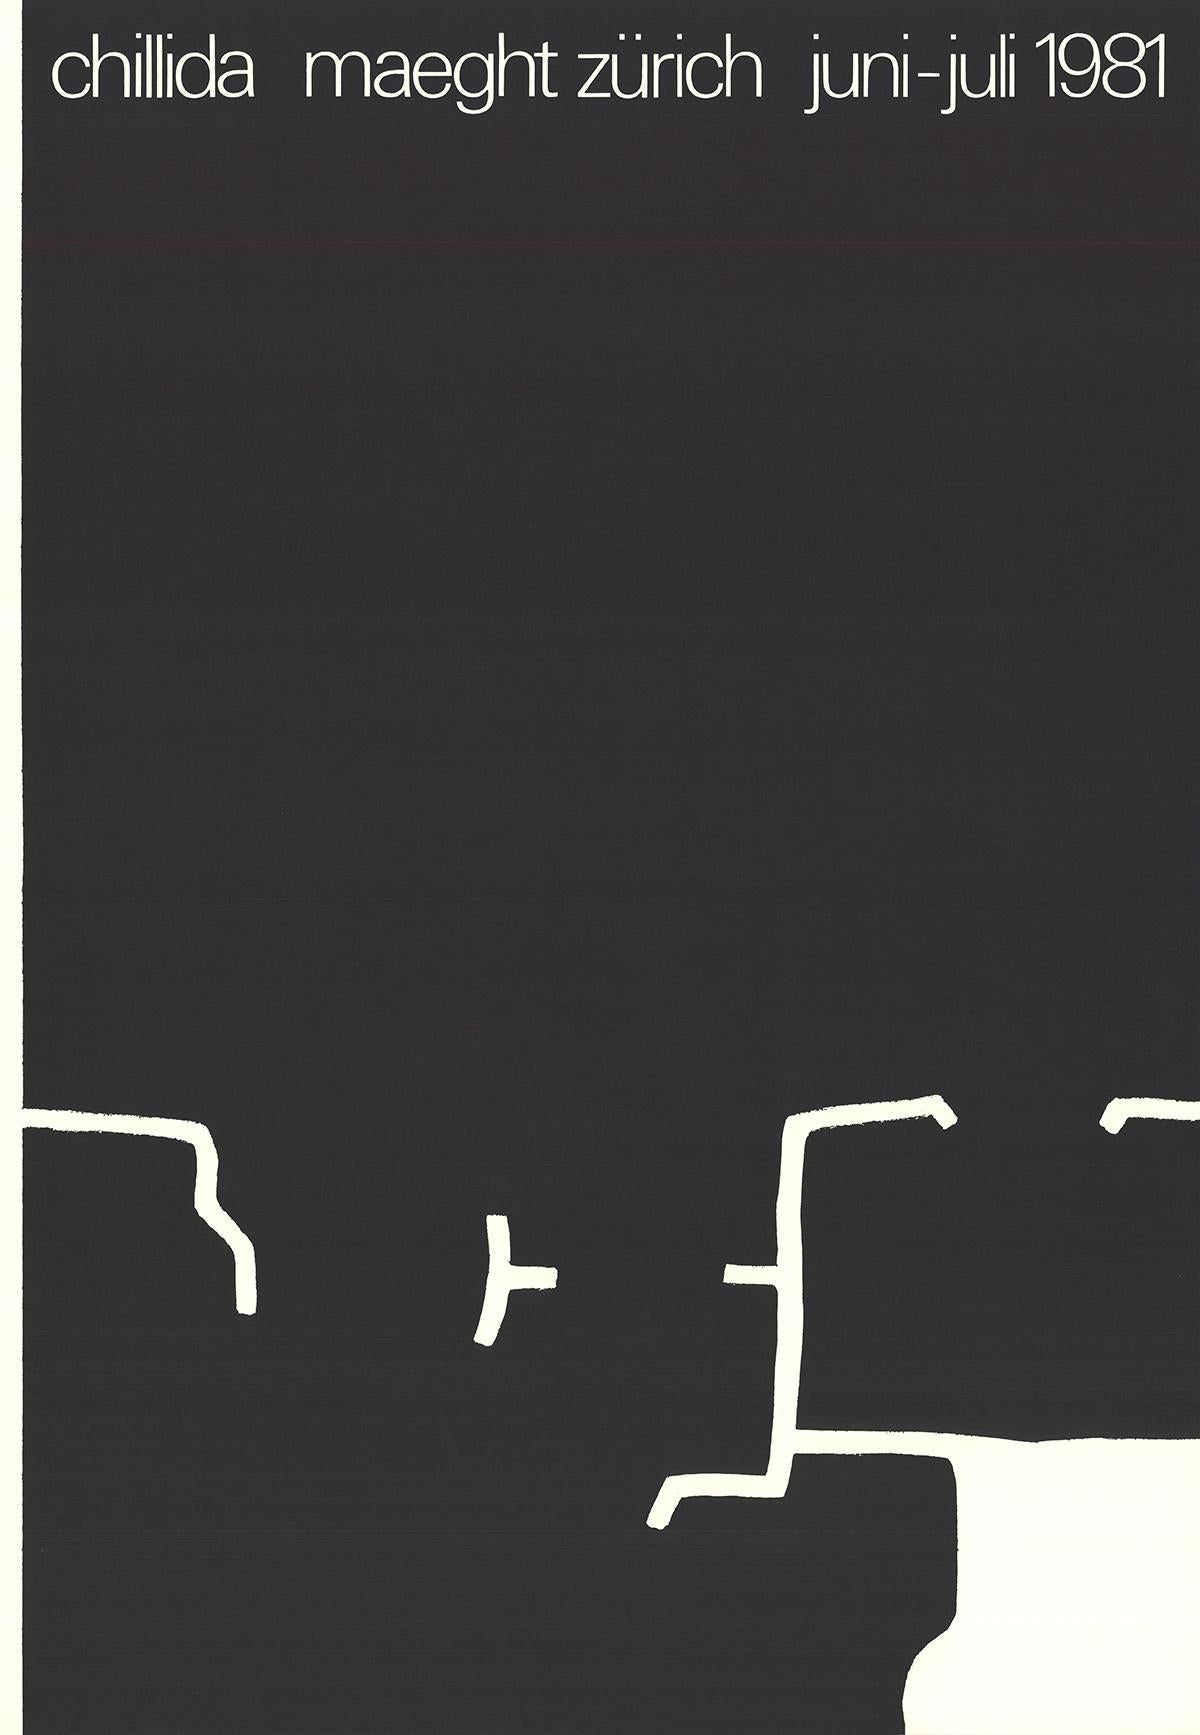 """Eduardo Chillida-Galerie Maeght-29.75/"""" x 19.5/""""-Lithograph-1980-Abstract-Brown"""